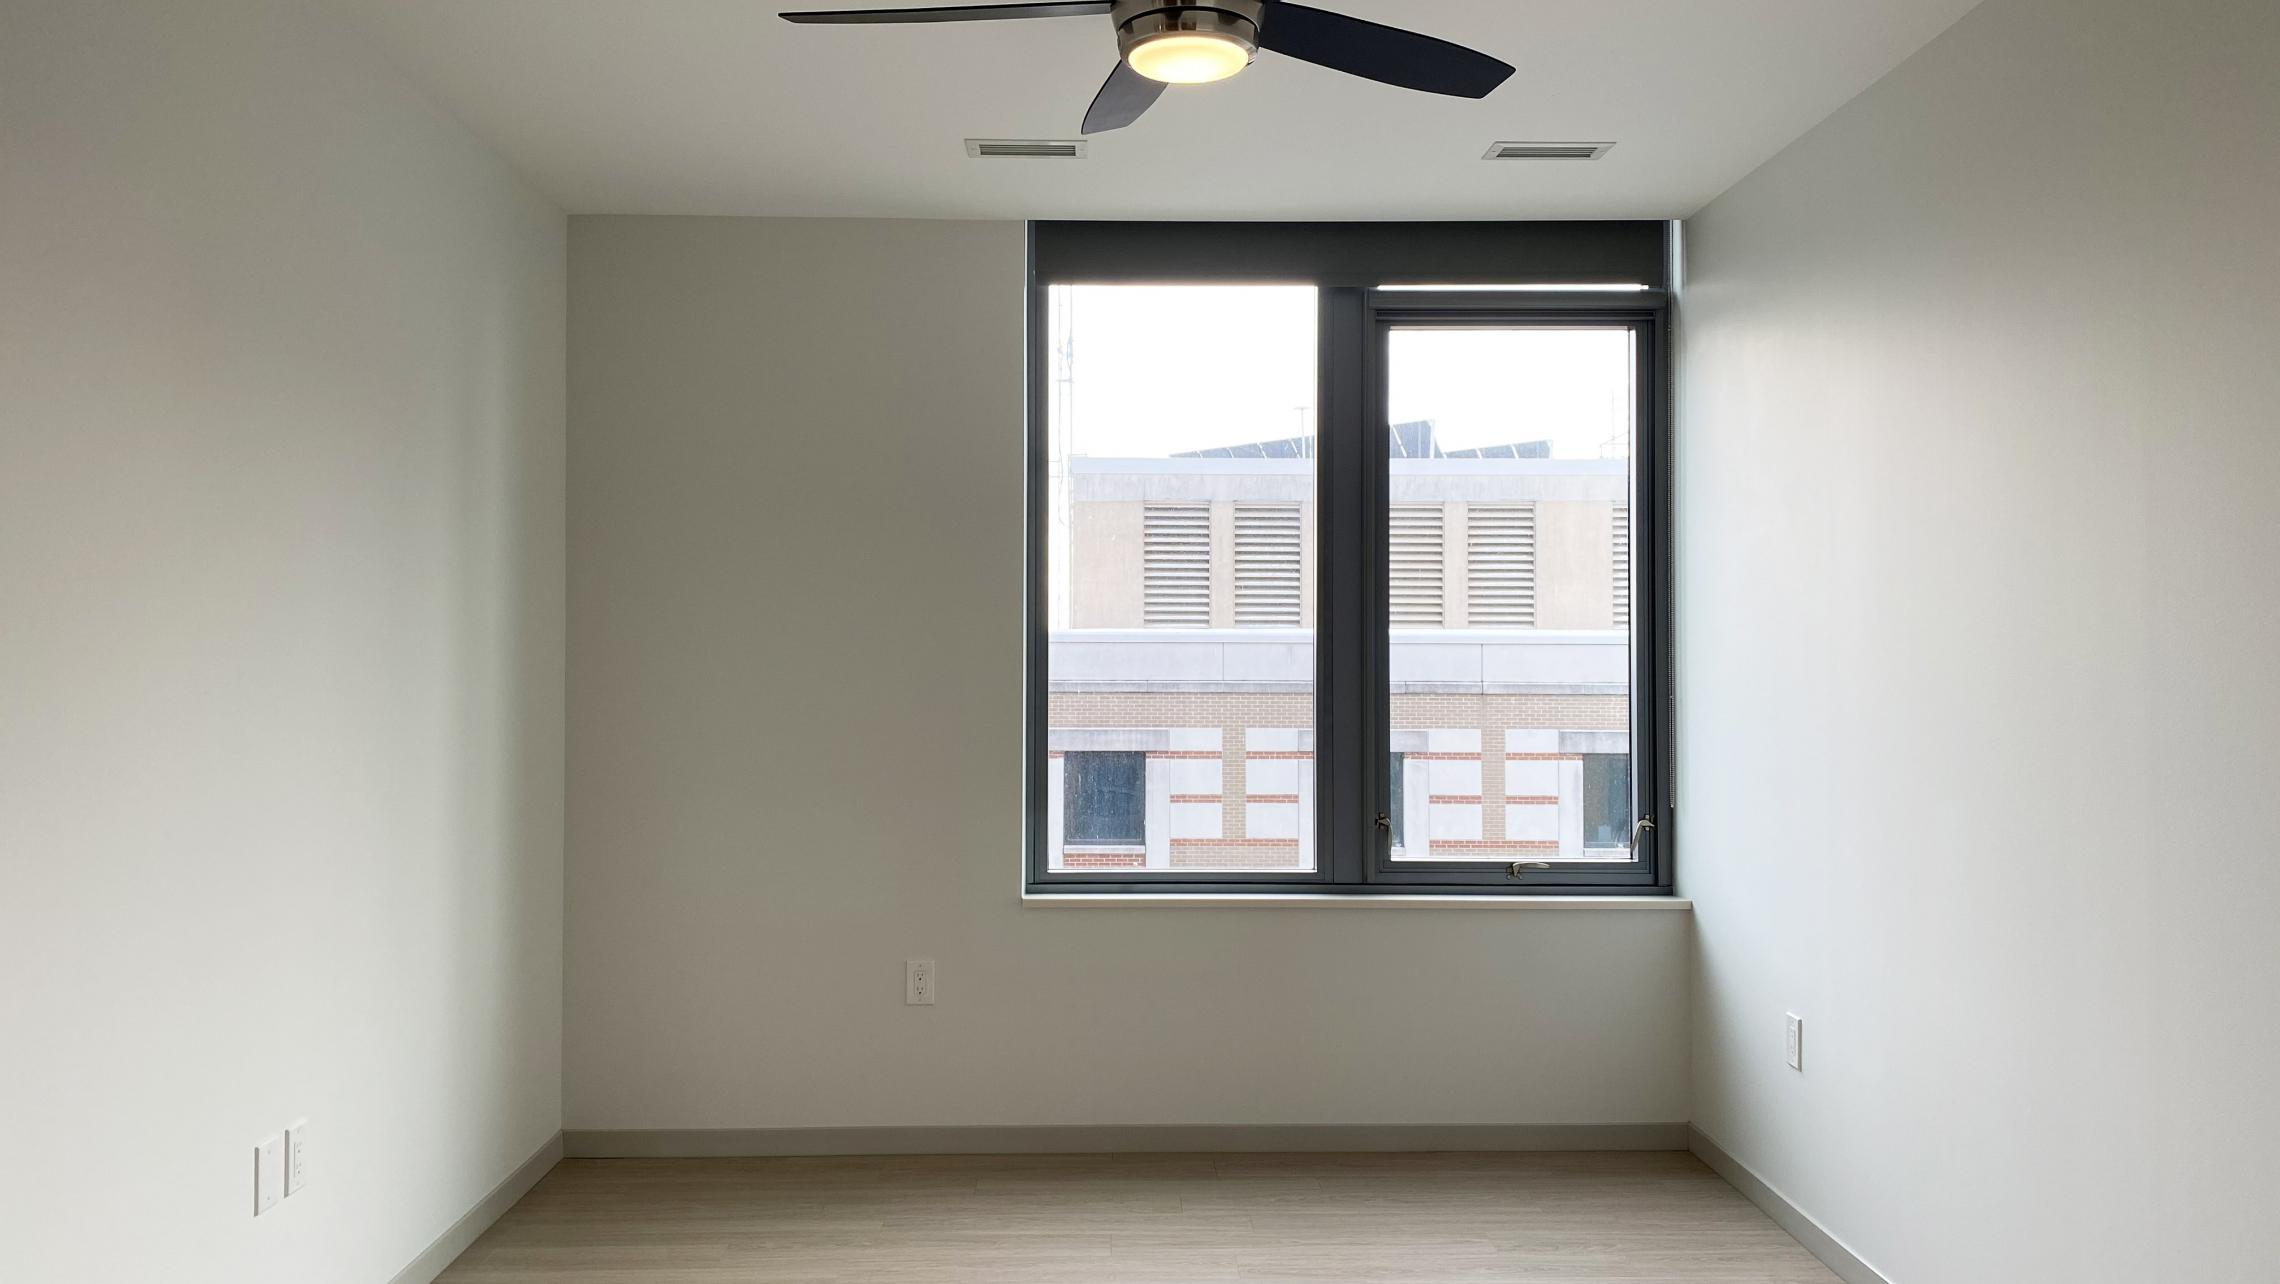 The-Pressman-Apartment-411-One-Bedroom-One-Bath-Kitchen-Living-Upscale-Luxurious-Modern-Exposed-Duct-Concrete-Capitol-Square-Downtown-Madison-Balcony-Terrace-Pets-Fitness-Lounge-Grill-Lifestyle